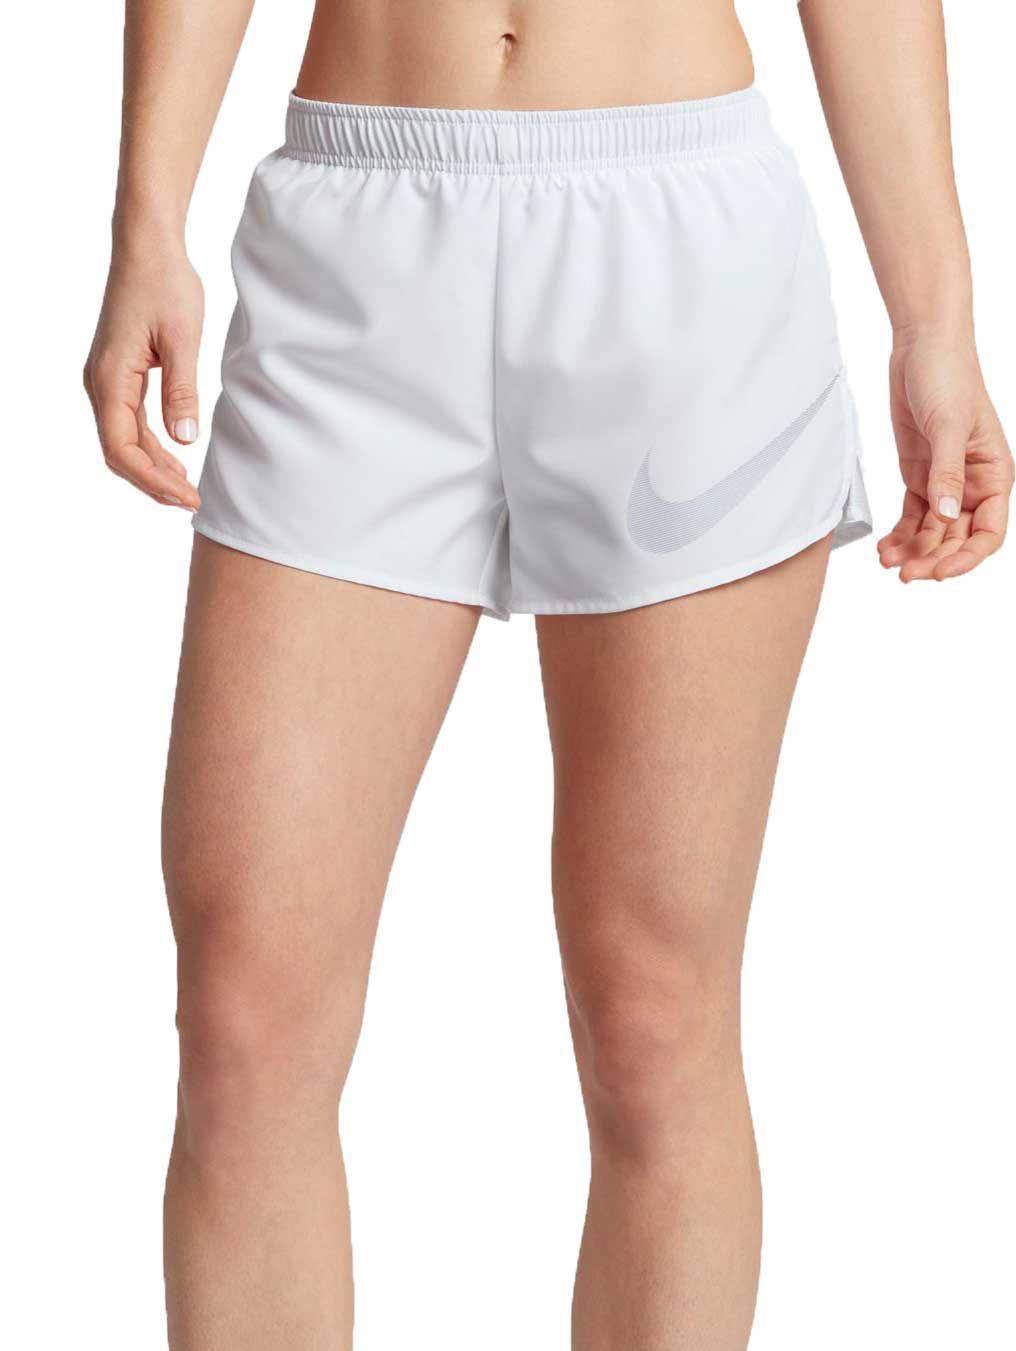 Women's Workout Shorts | DICK'S Sporting Goods